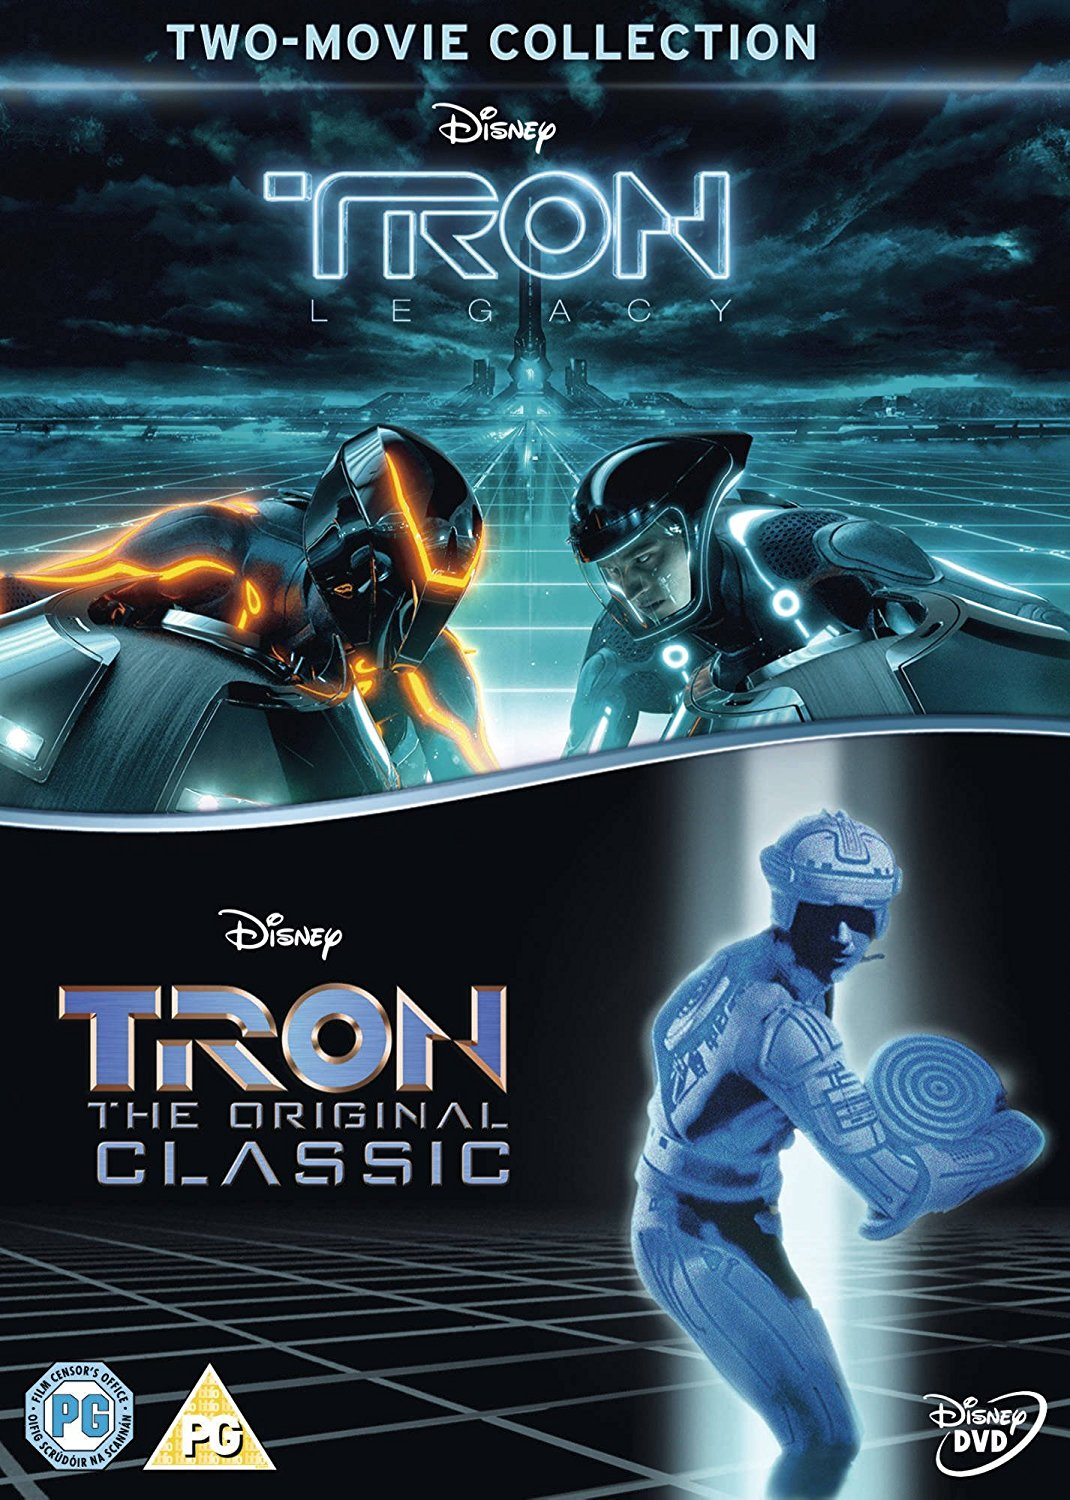 tron / tron legacy [dvd] box set new sealed uk region 2 tron 1 and 2